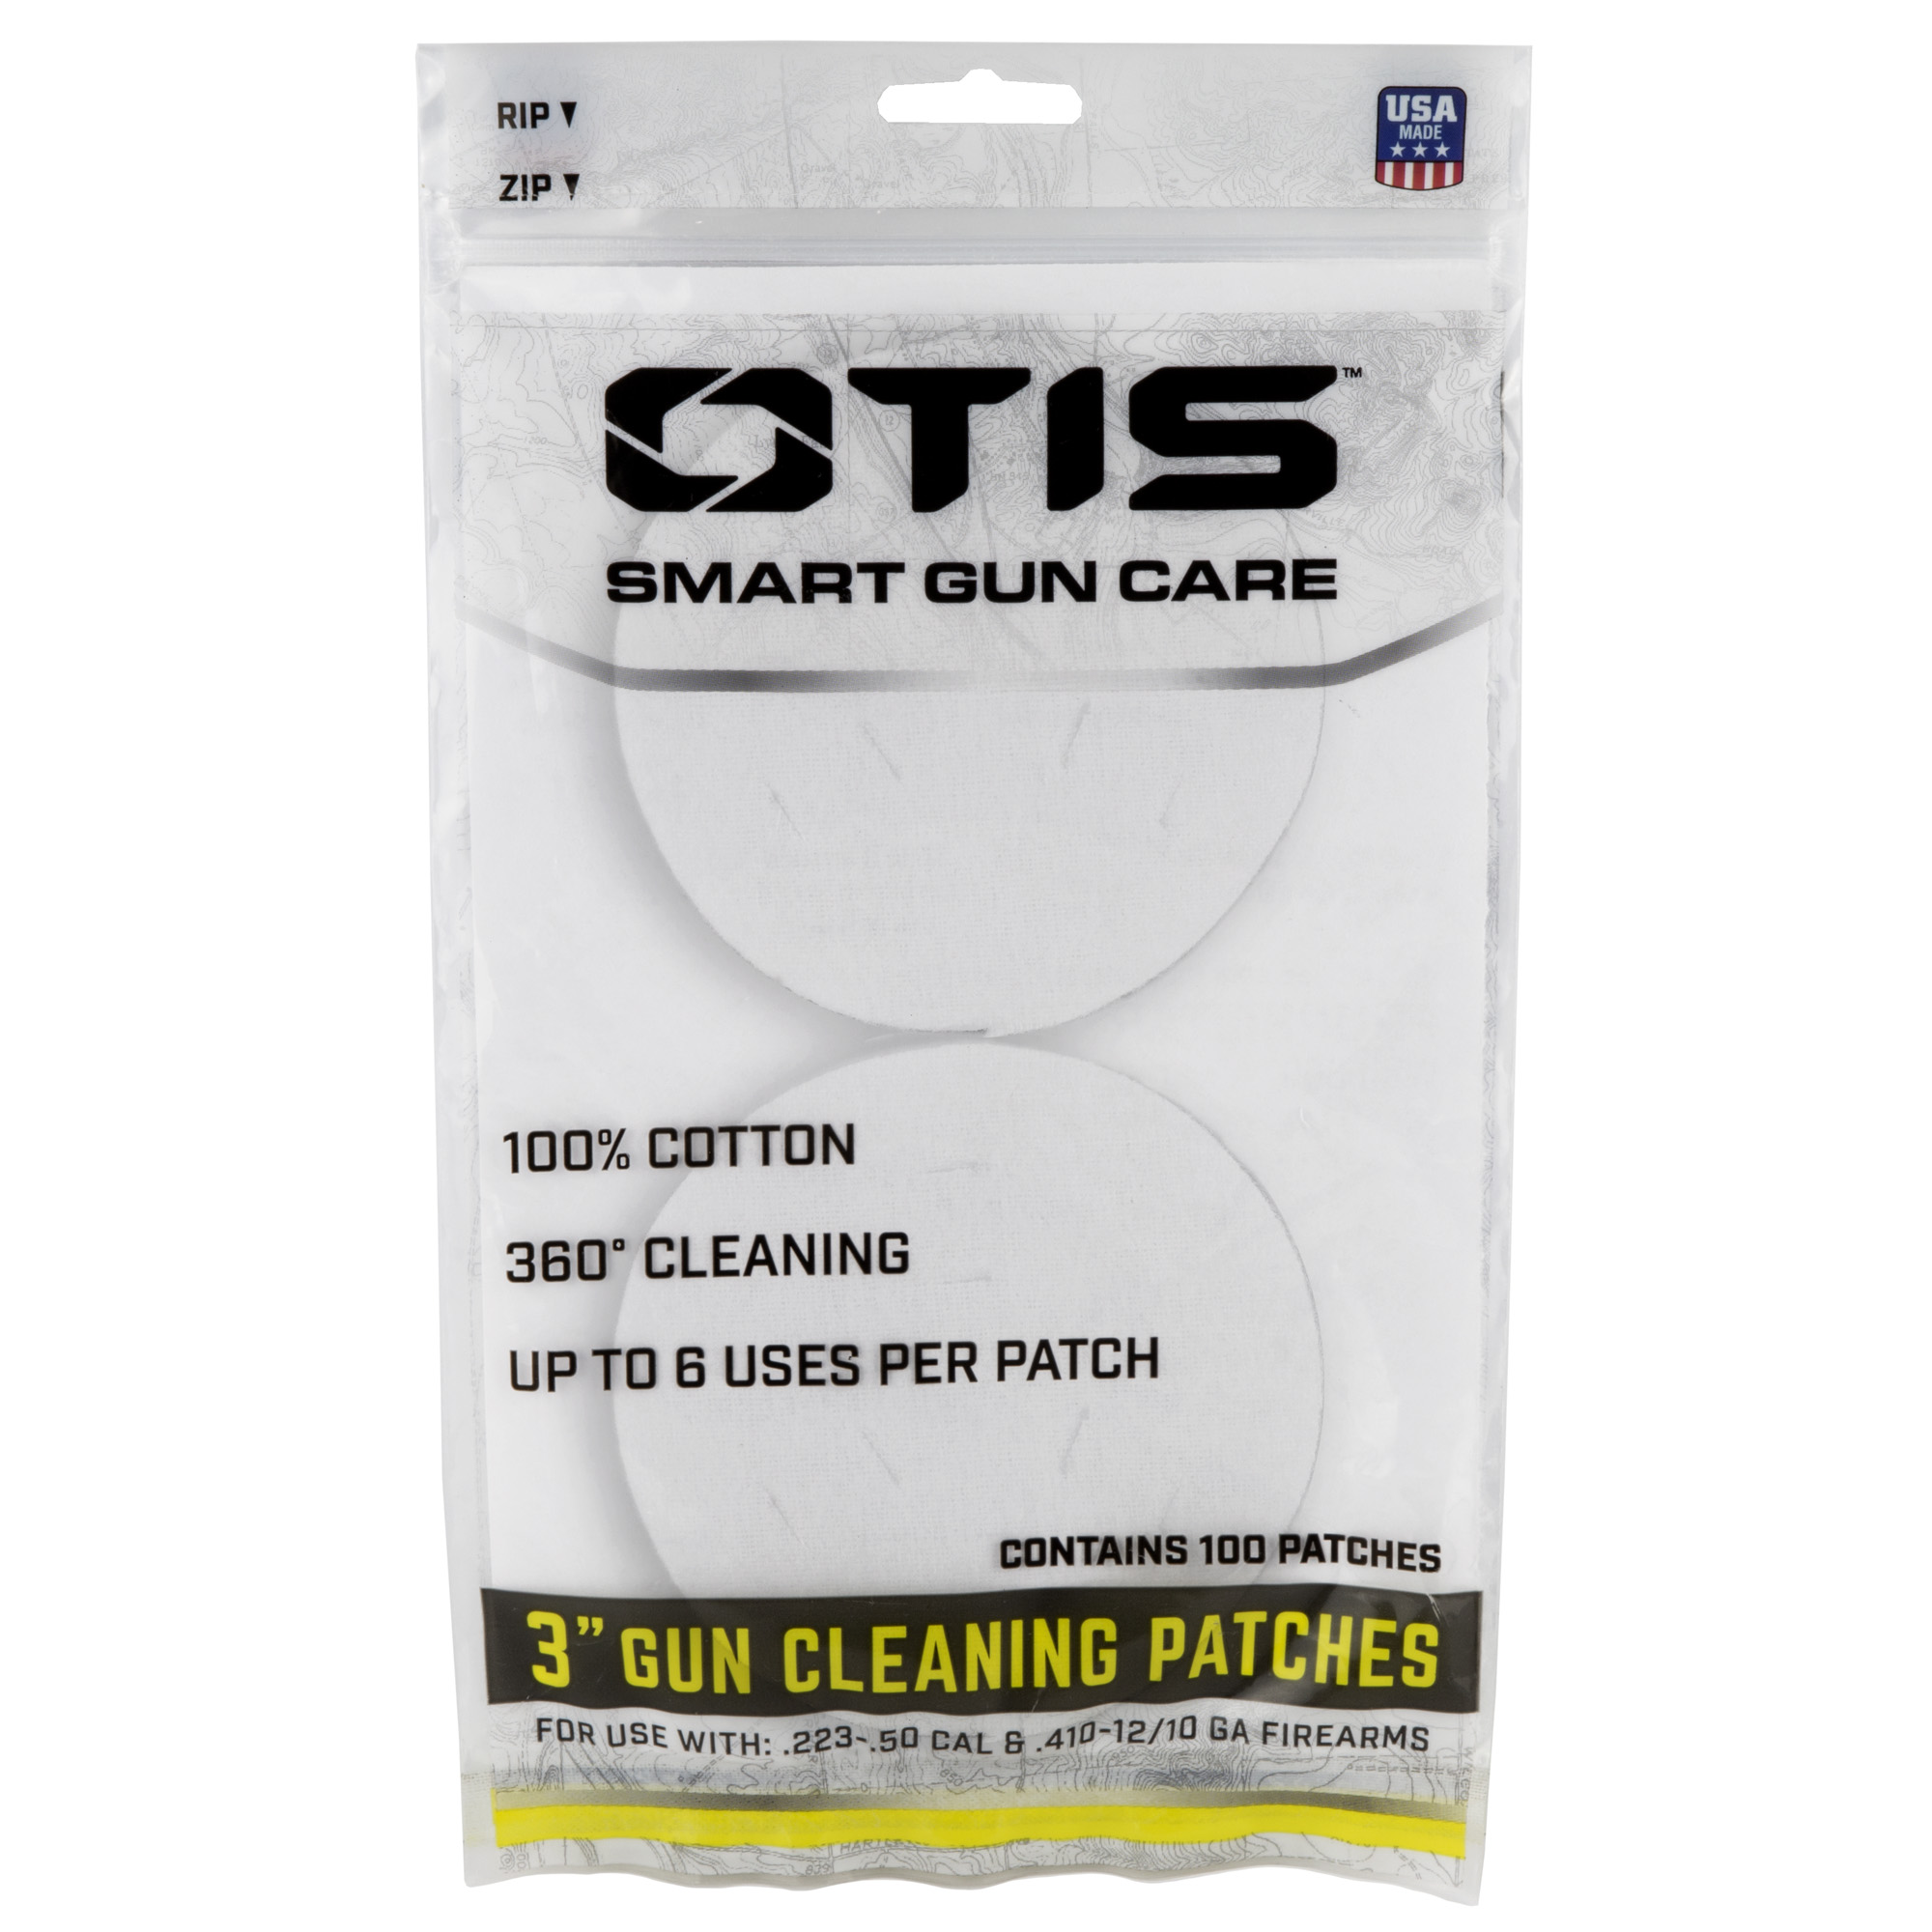 """With a competitive drive and a never-ending passion for hunting and shooting"""" OTIS is constantly looking for a better way to help you care for your firearms. OTIS Smart Gun Care products allow passionate gun owners to get more from their firearms. More years. More precision. More rounds down range."""